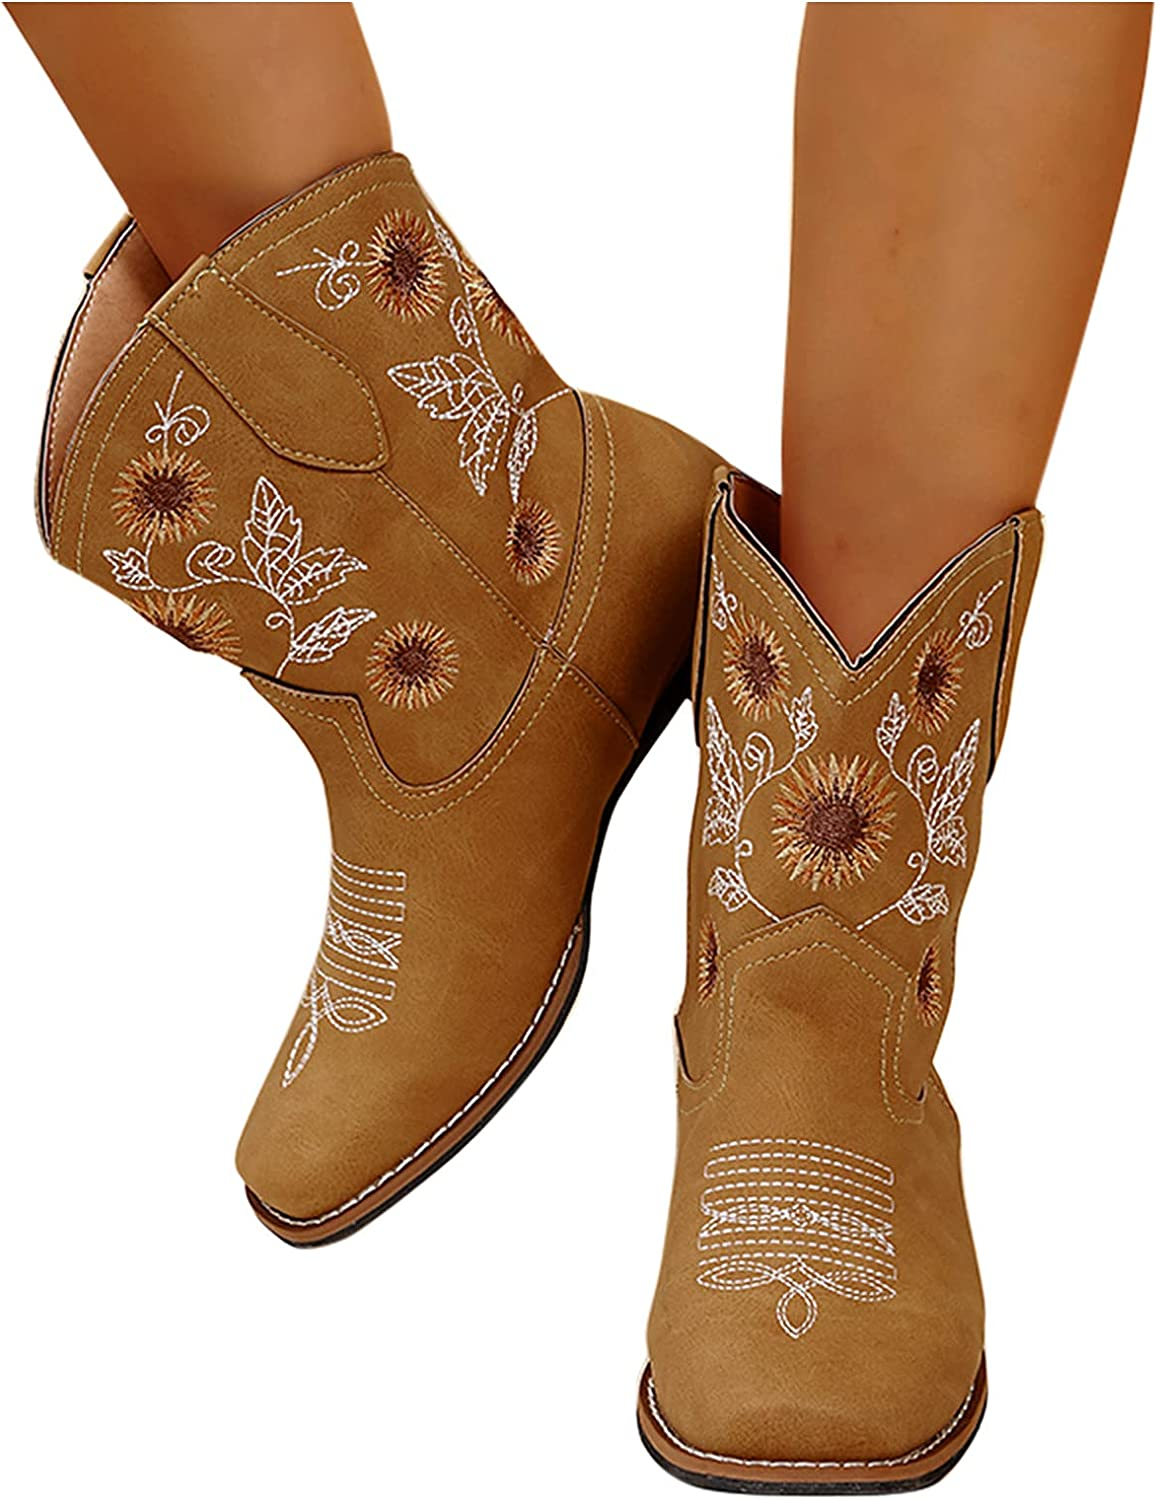 Olymmont Cowboy Mid Calf Boots for Women Sunflower Embroidery Square Toe Boots Stitched Distressed Fashion Warm Cowgirl Country Modern Western Boots (Yellow, 9.5-10)